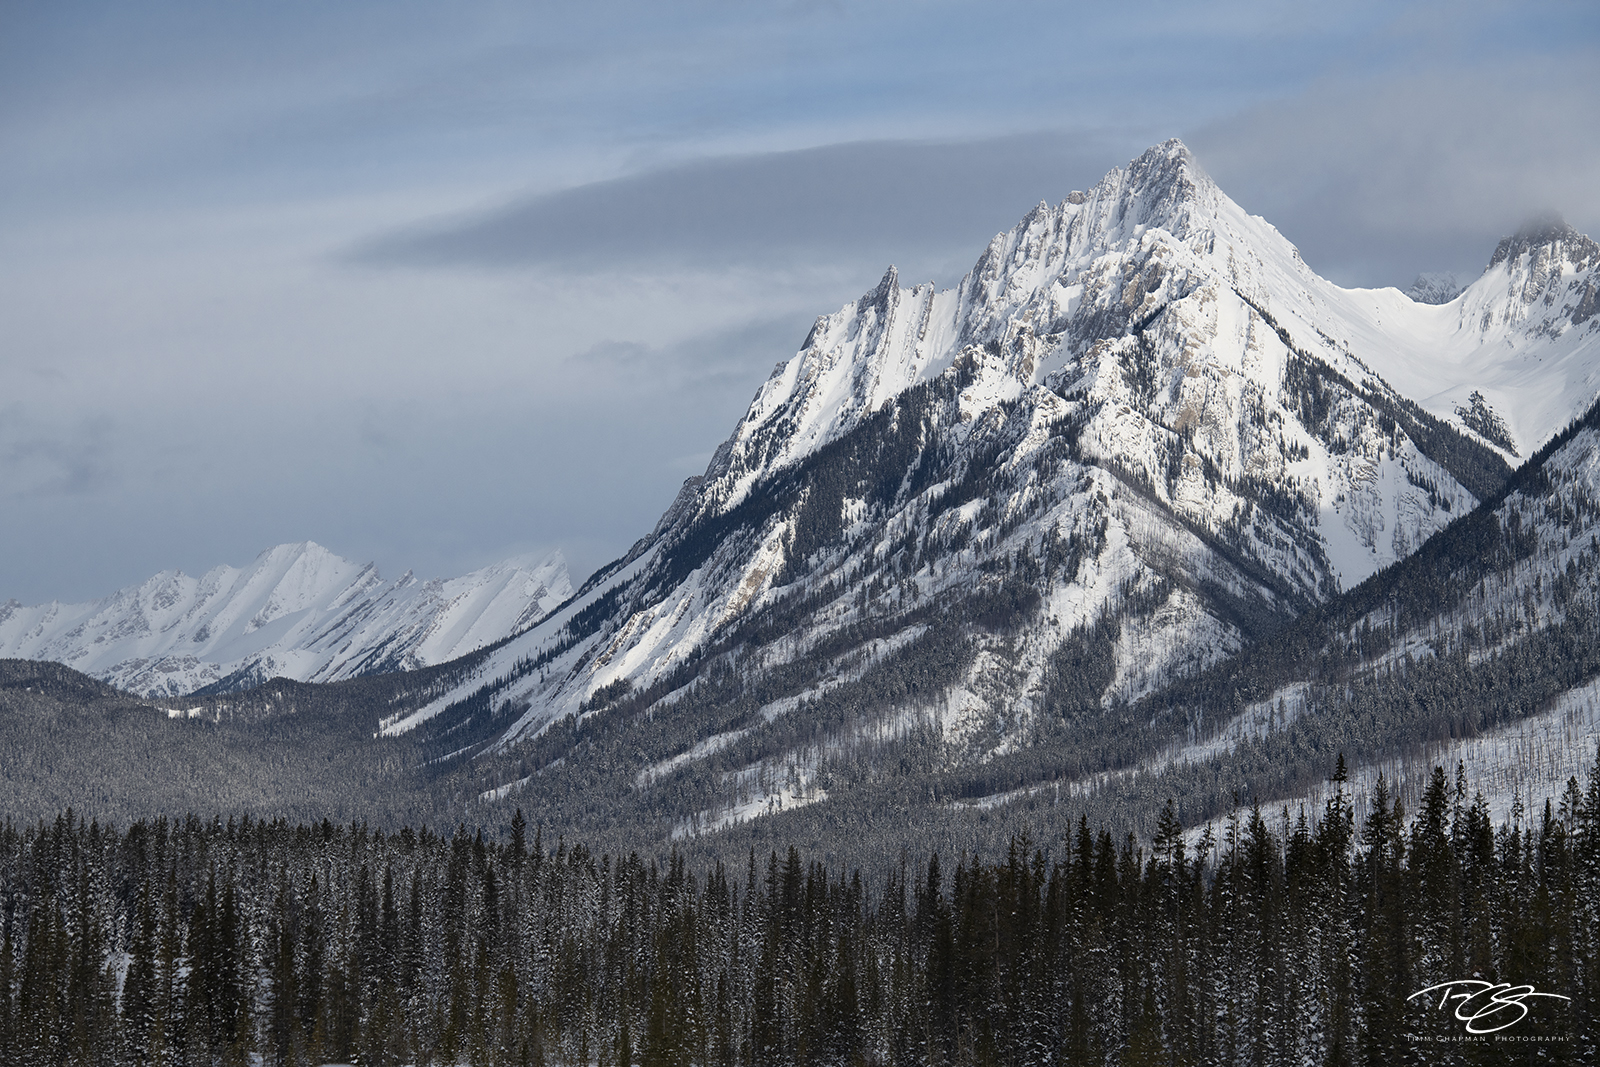 The majestic Canadian Rockies dressed in snow